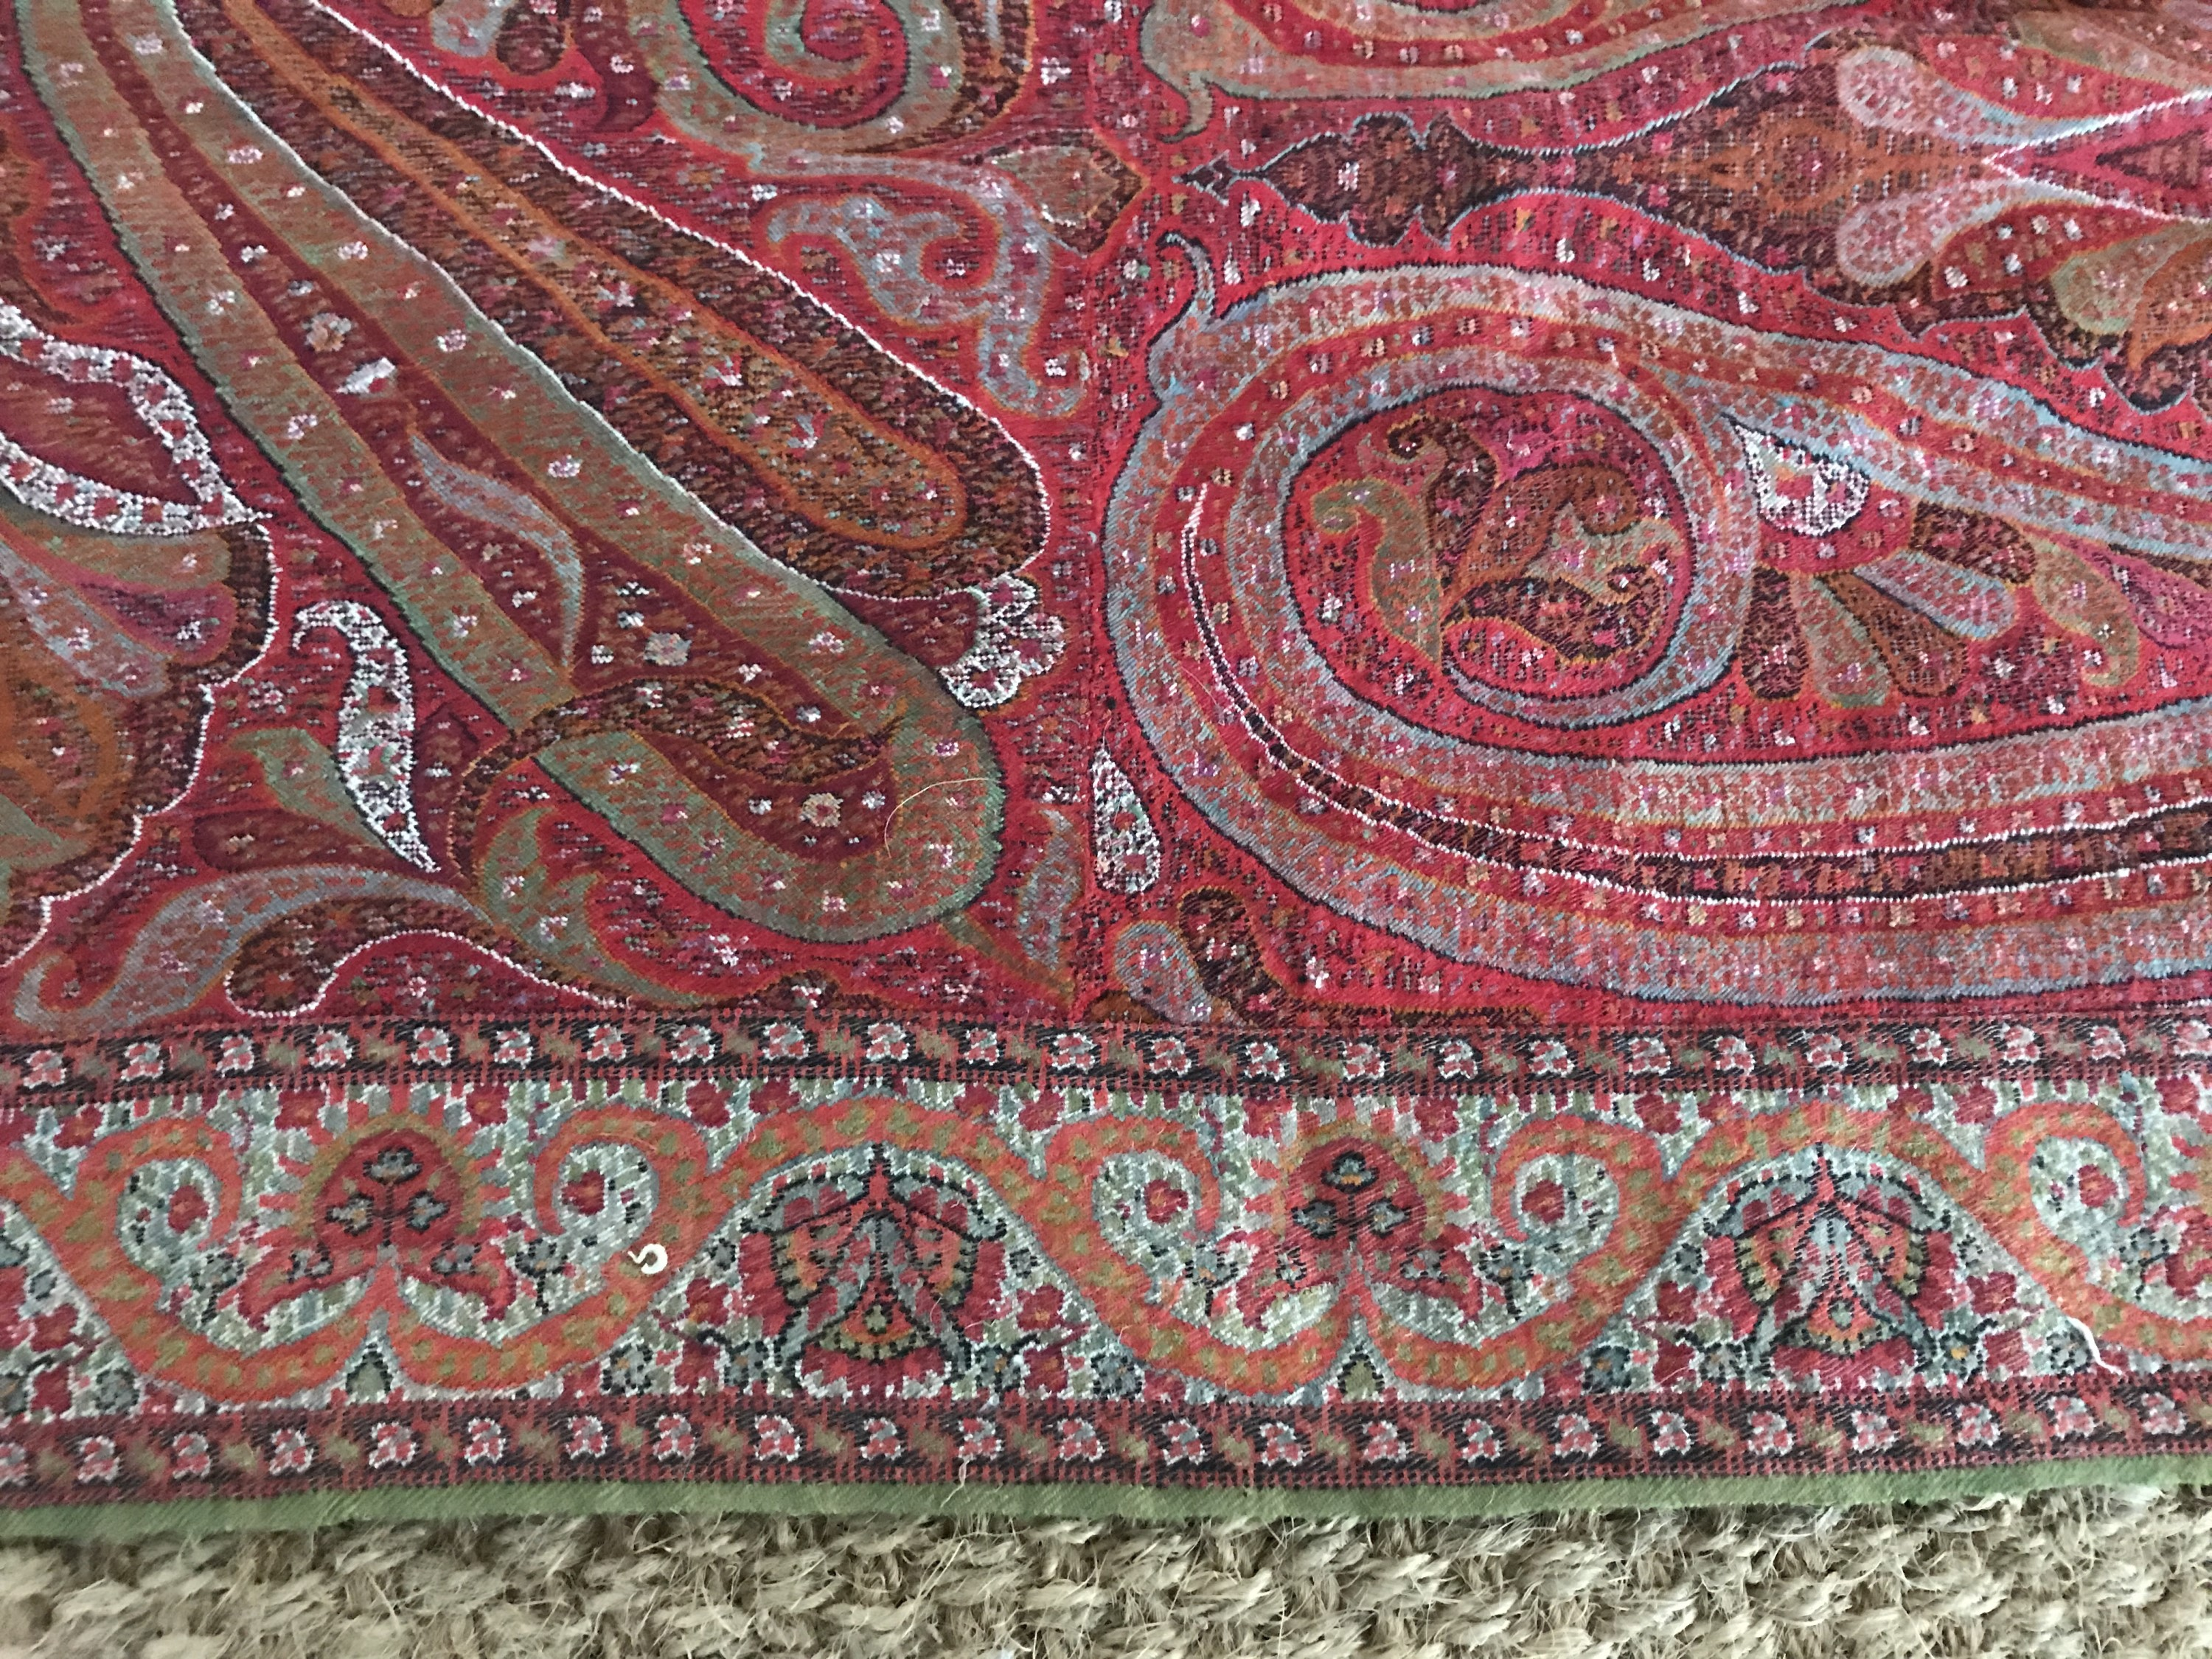 Lot 39 - A 19th Century woven paisley shawl, of Indian origin, having central circular insert in cream